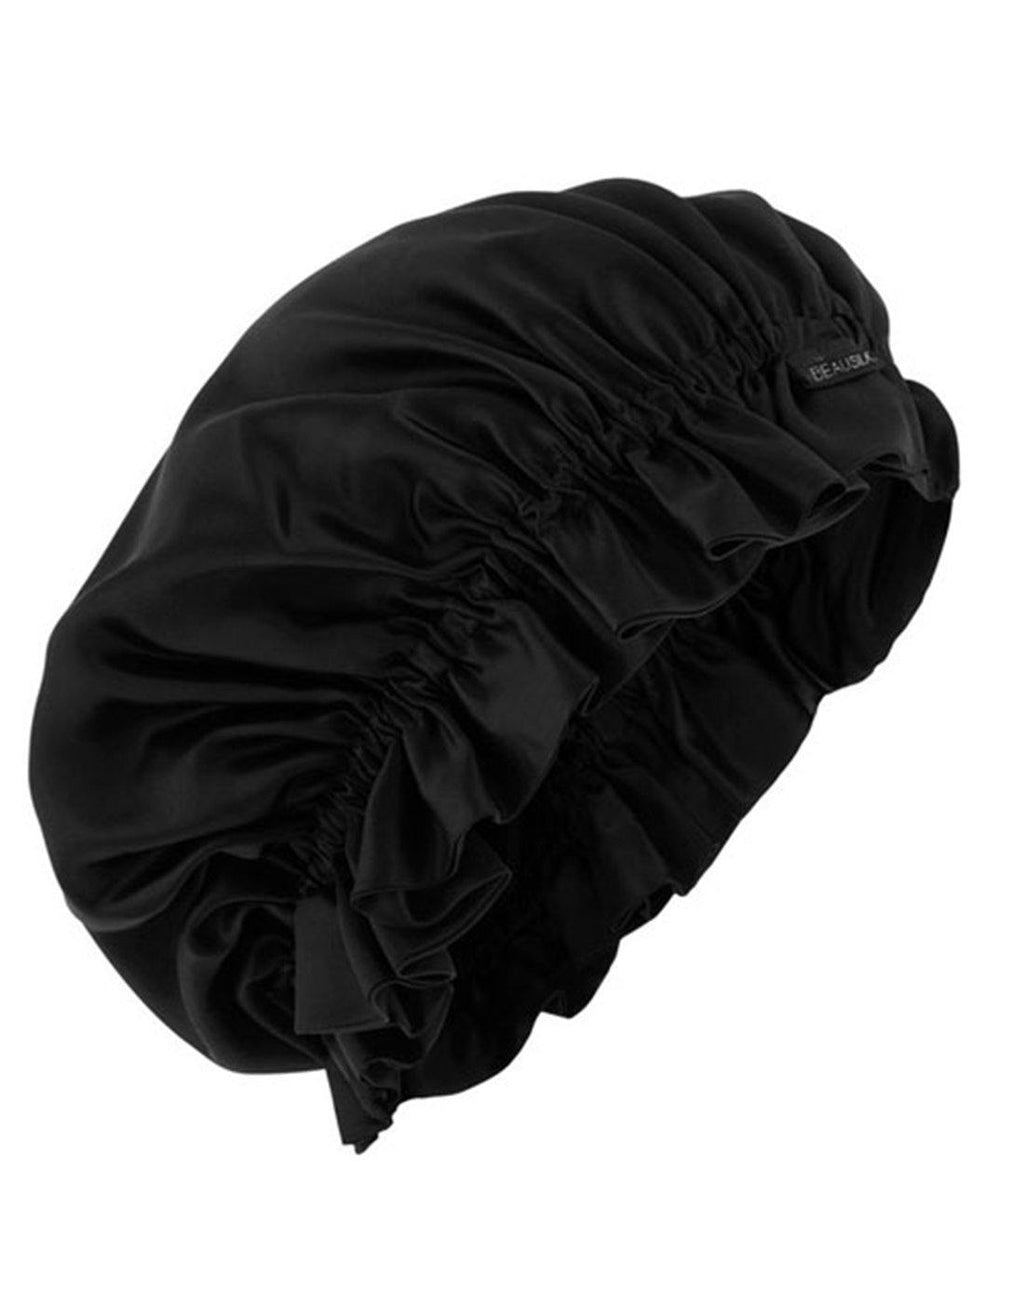 Silk Sleepcap silk sleep cap bonnet